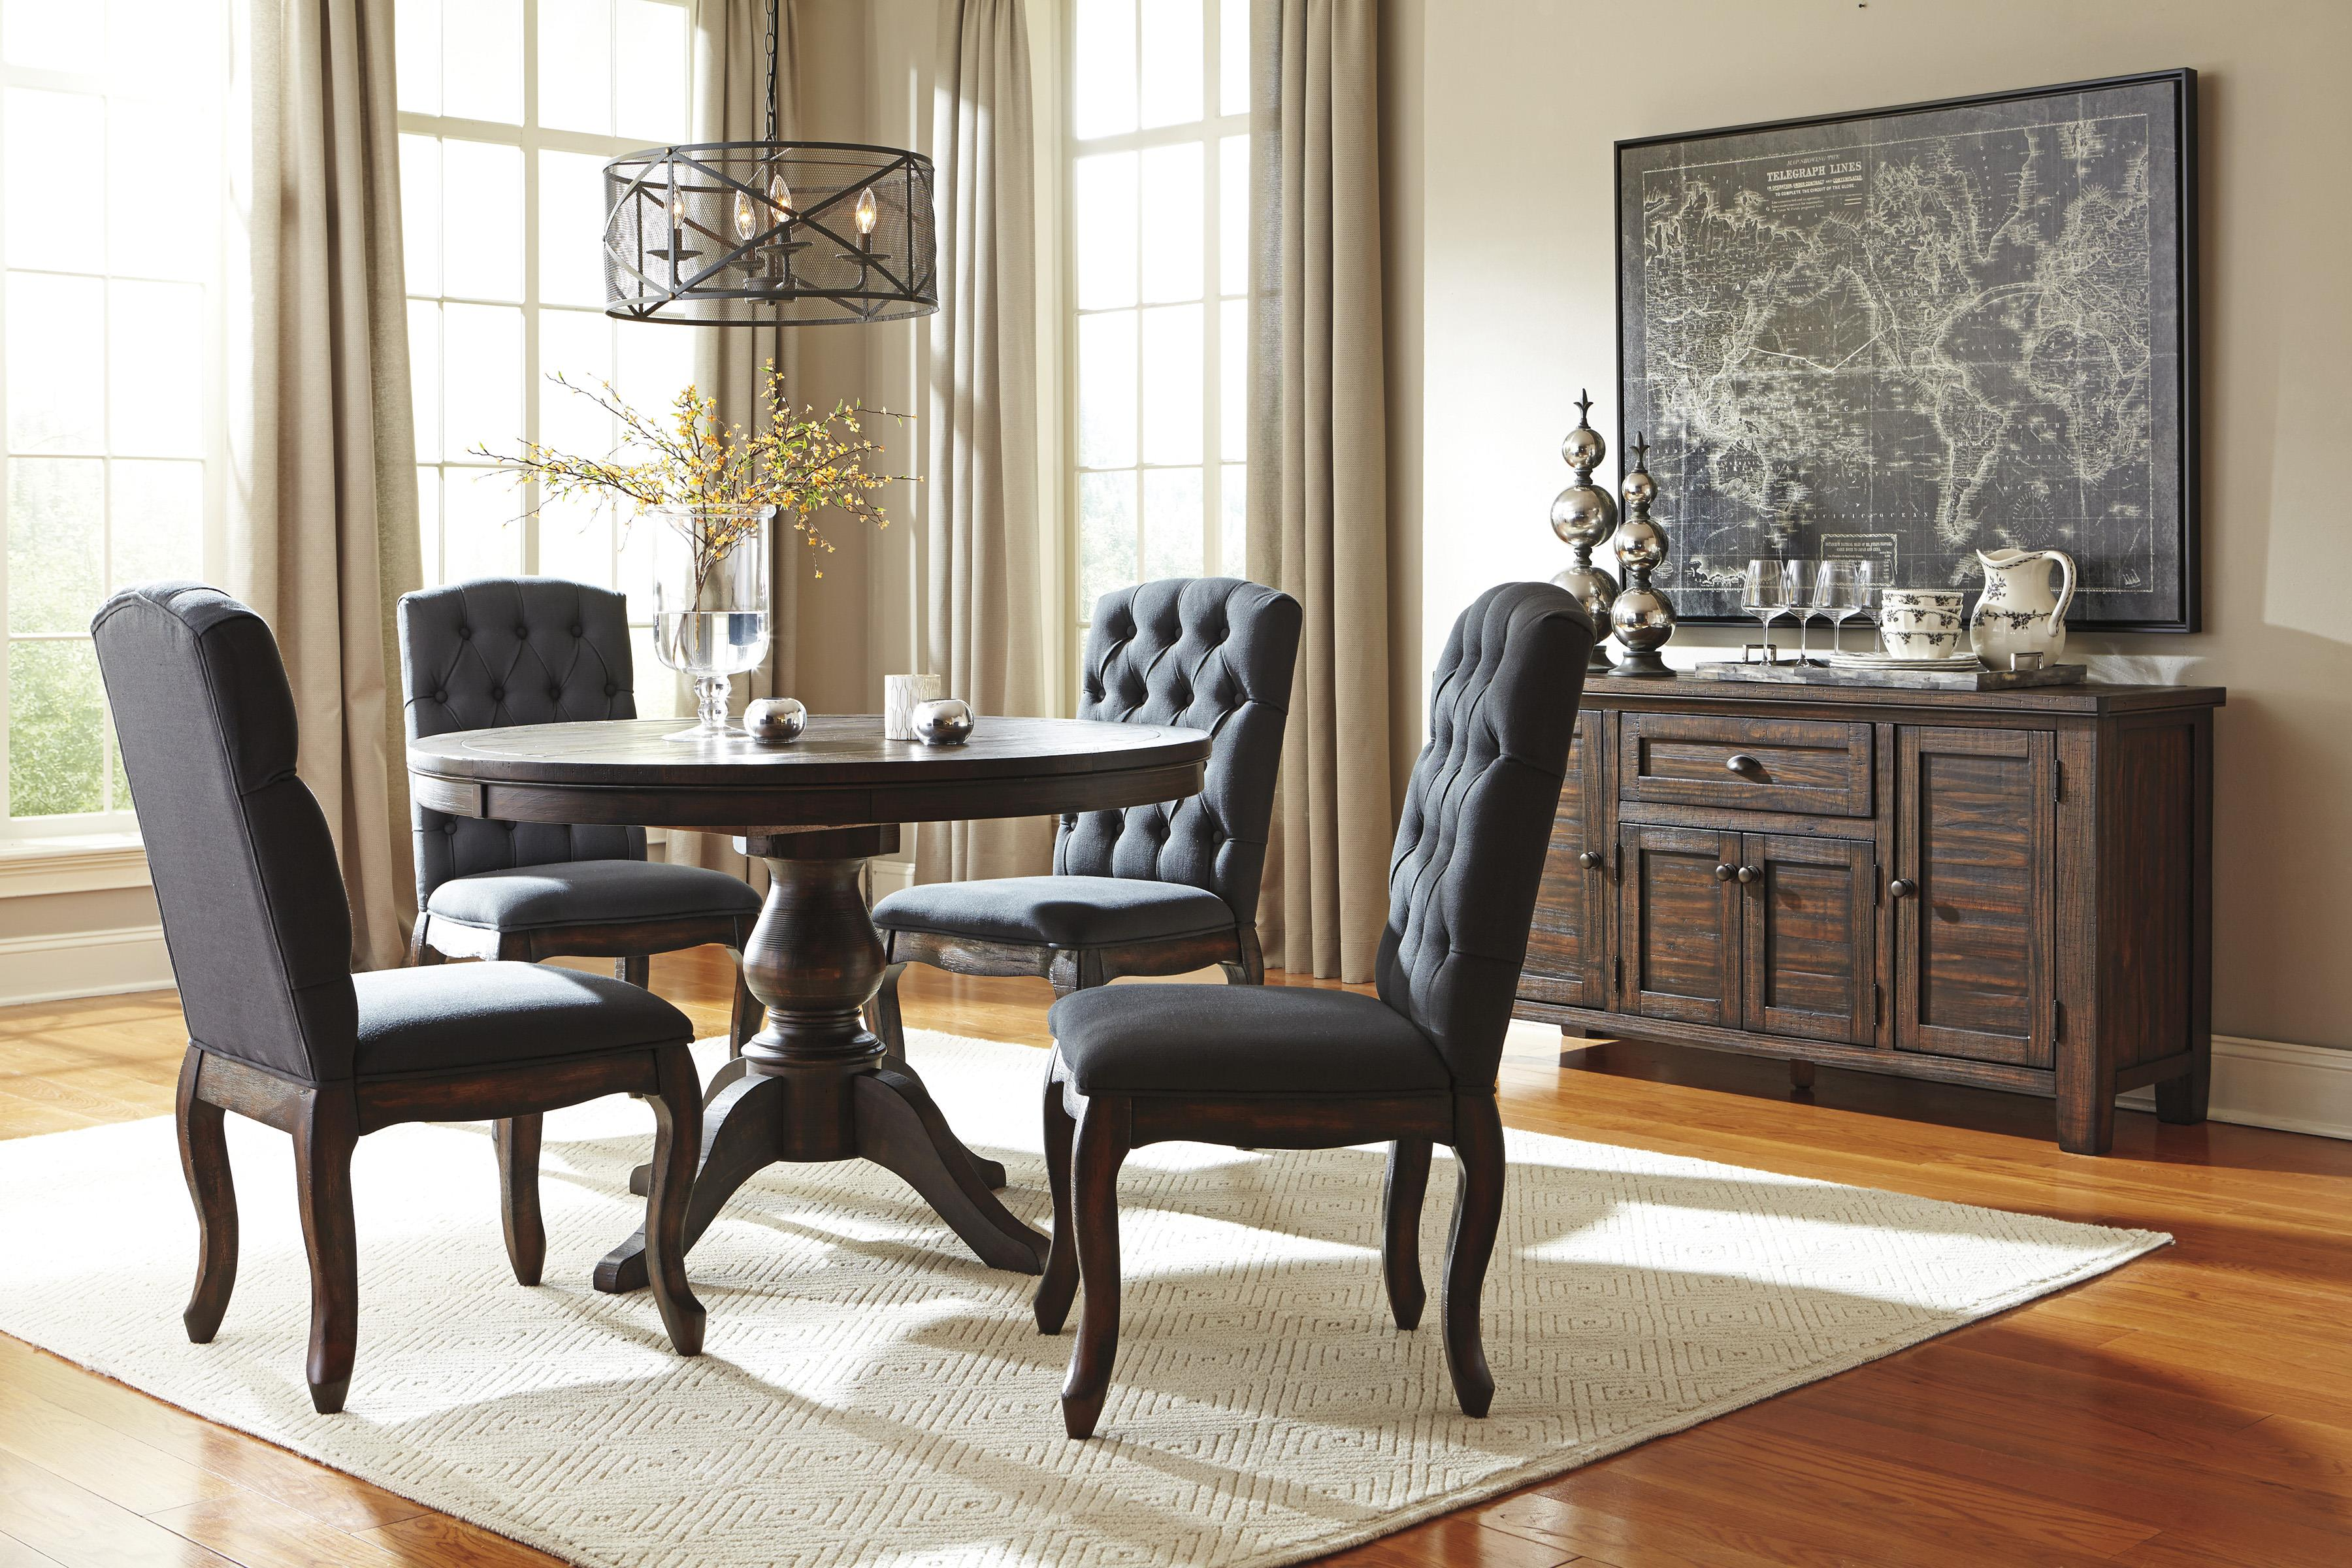 Captivating Signature Design By Ashley Trudell Formal Dining Room Group | Northeast  Factory Direct | Formal Dining Room Groups Cleveland, Eastlake, Westlake,  Mentor, ...